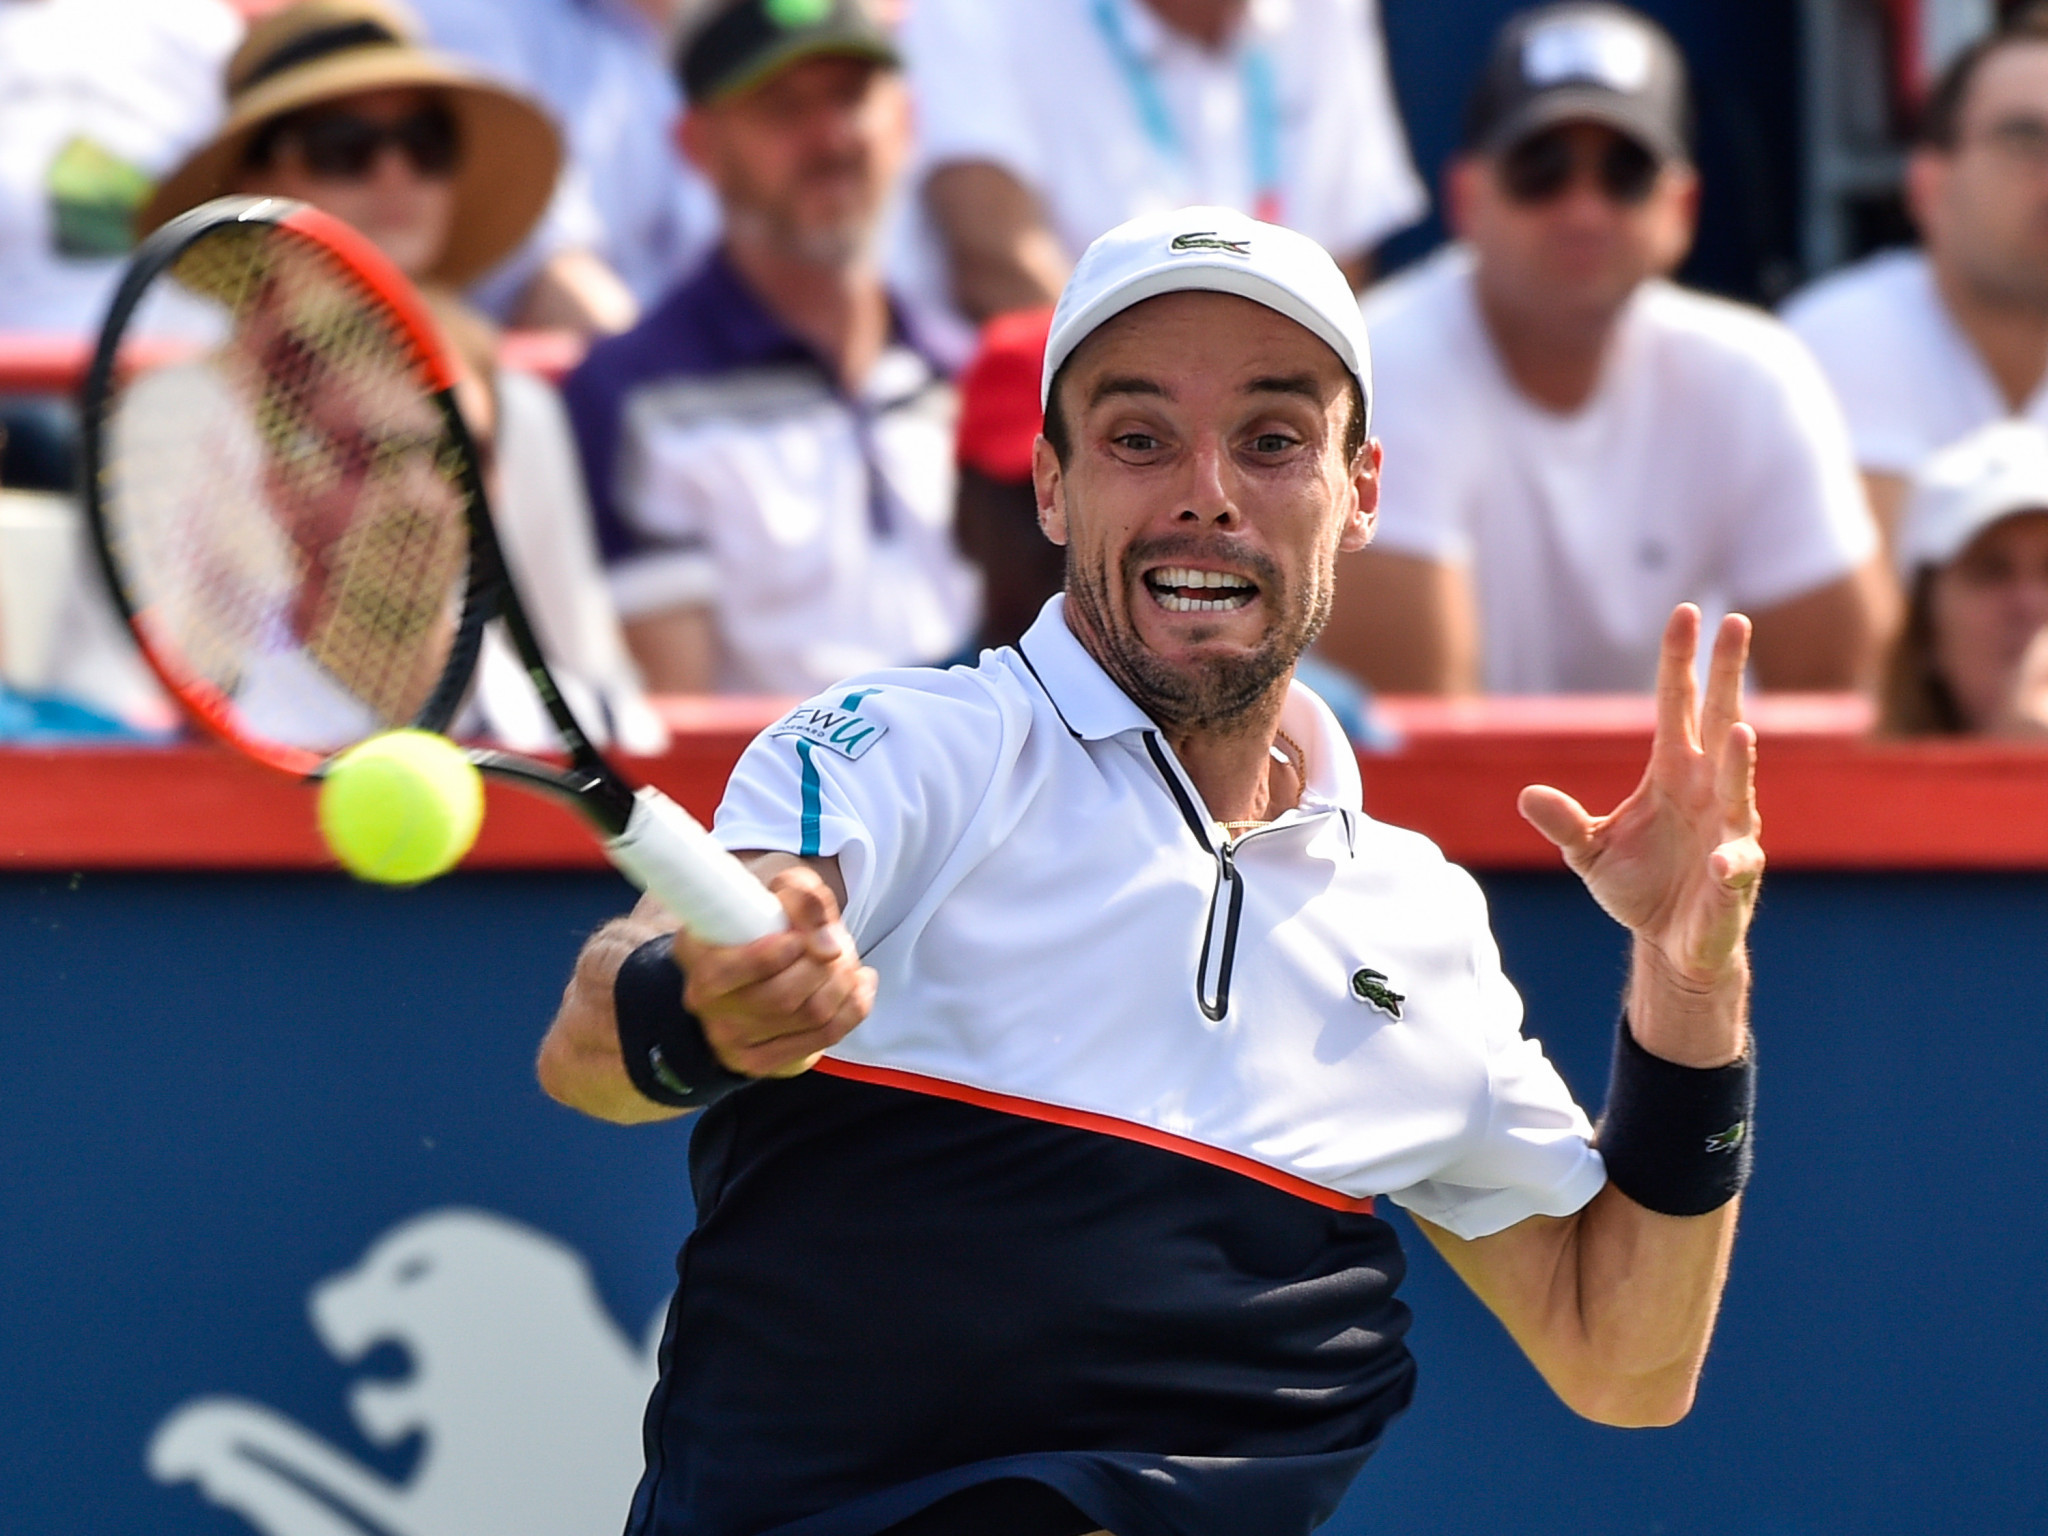 Bautista Agut through to round two at Rogers Cup